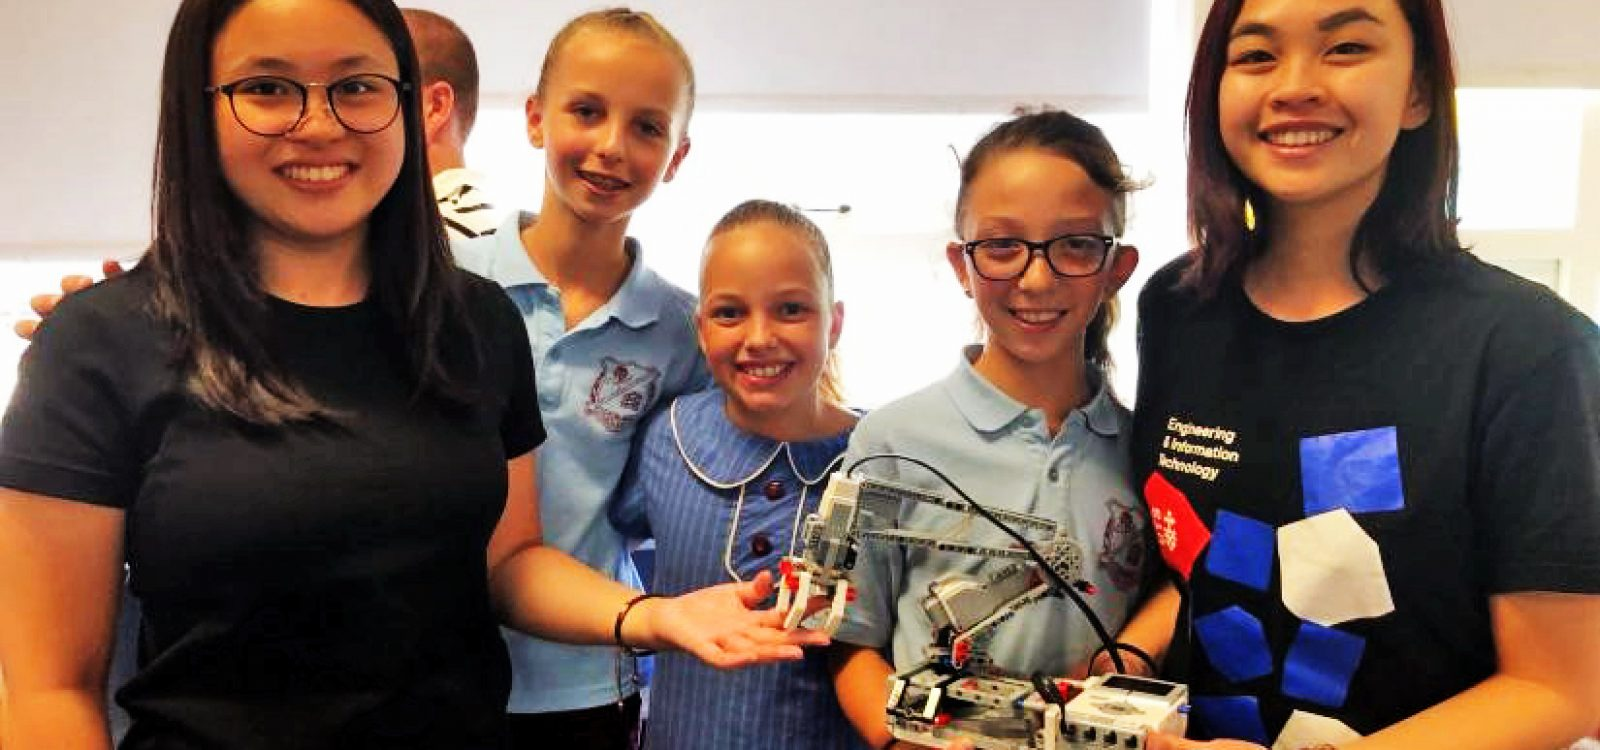 Building STEM aspiration in primary school girls